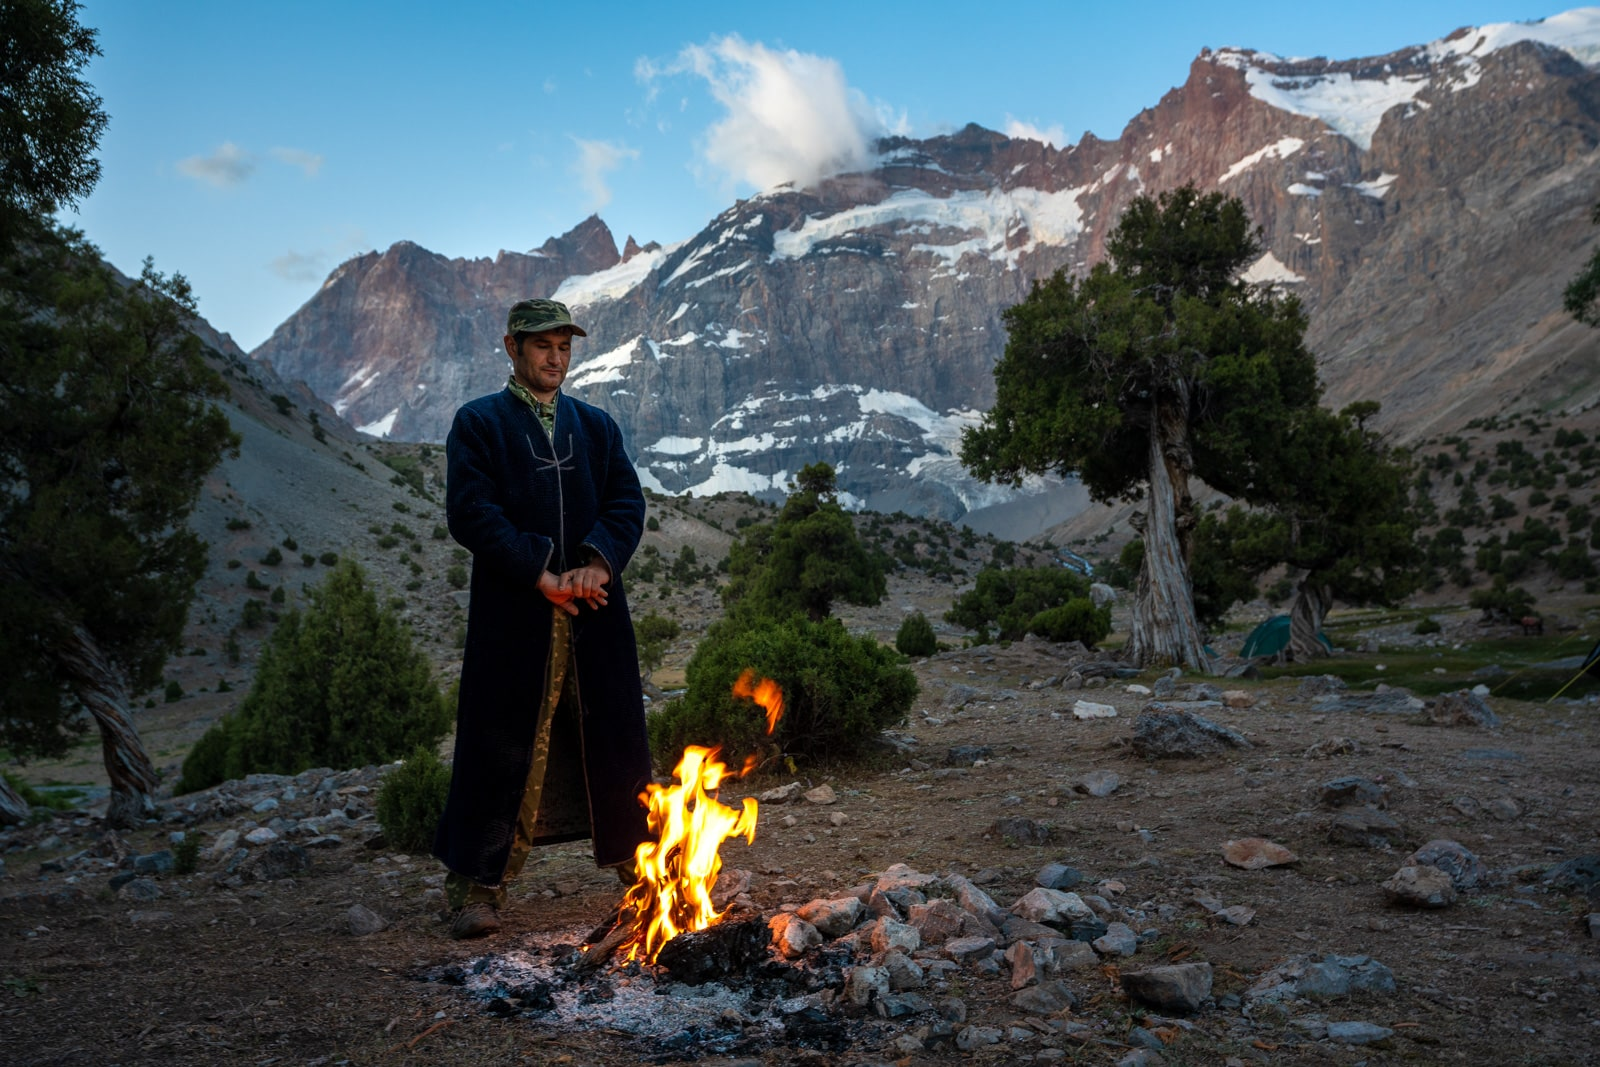 Porter warming himself by the fire in Tajikistan's Fann Mountains at sunrise